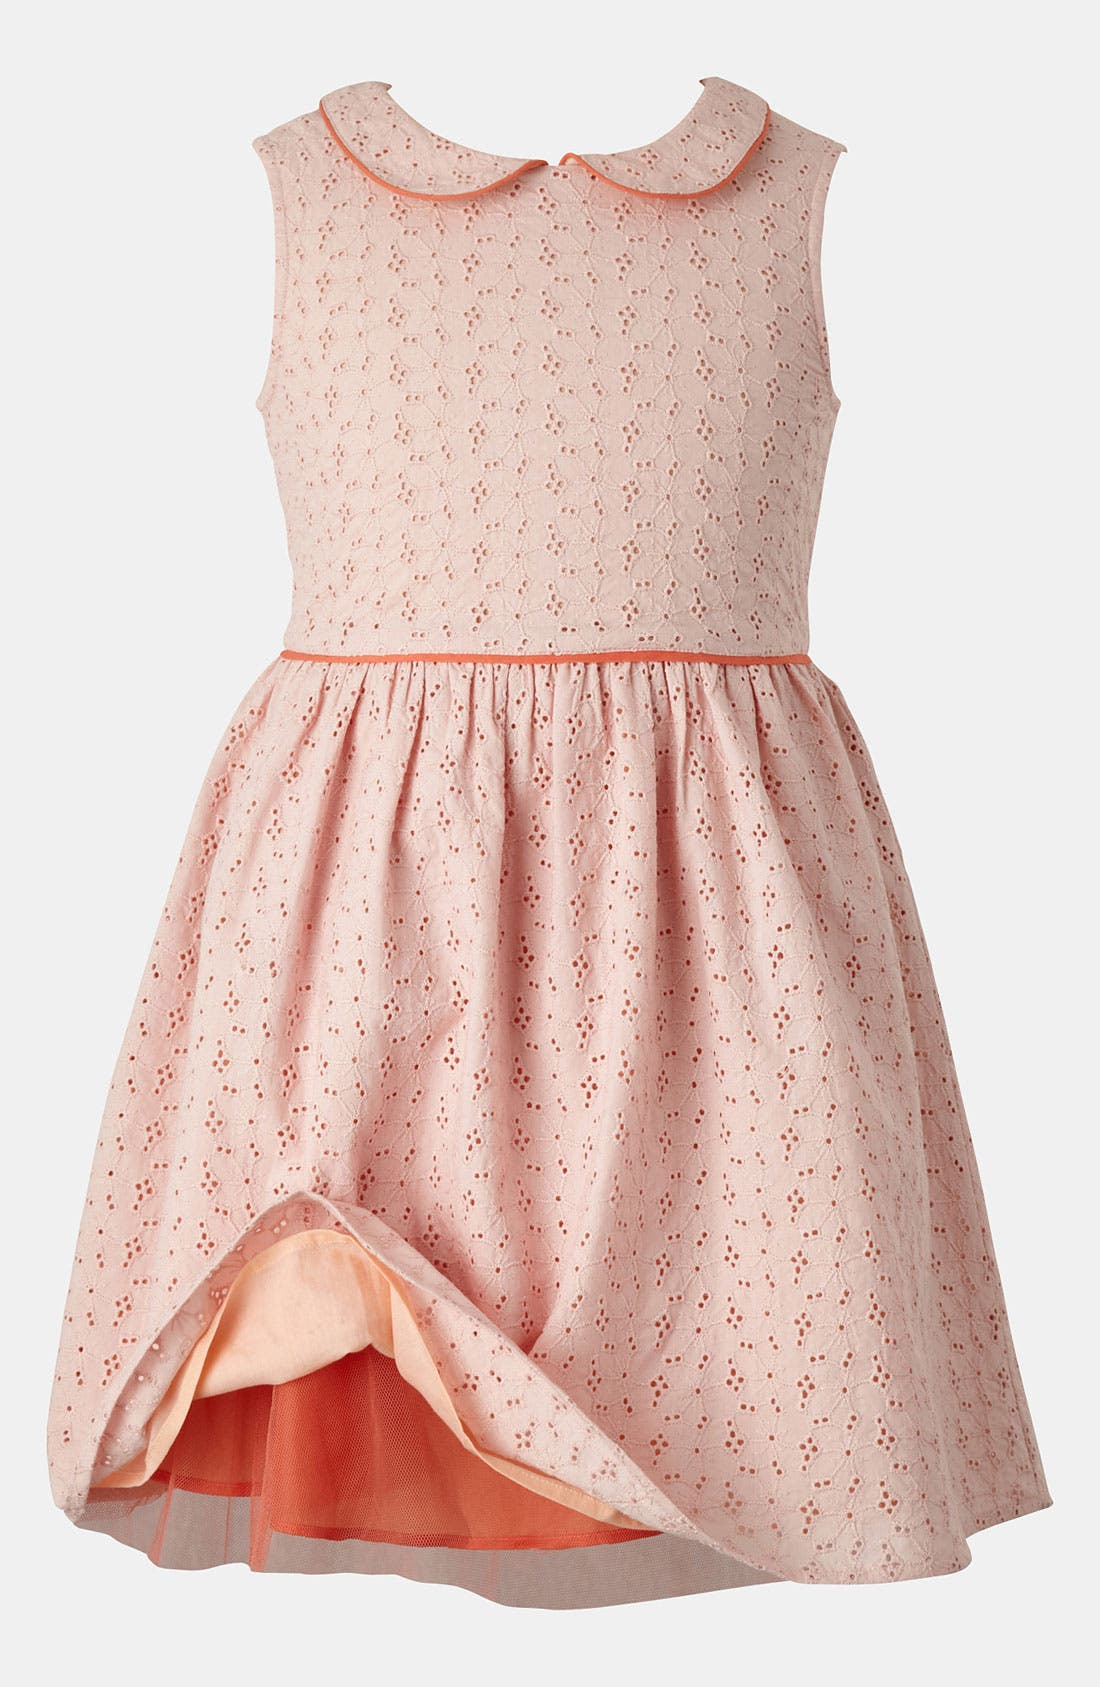 Main Image - Mini Boden Eyelet Dress (Little Girls & Big Girls)